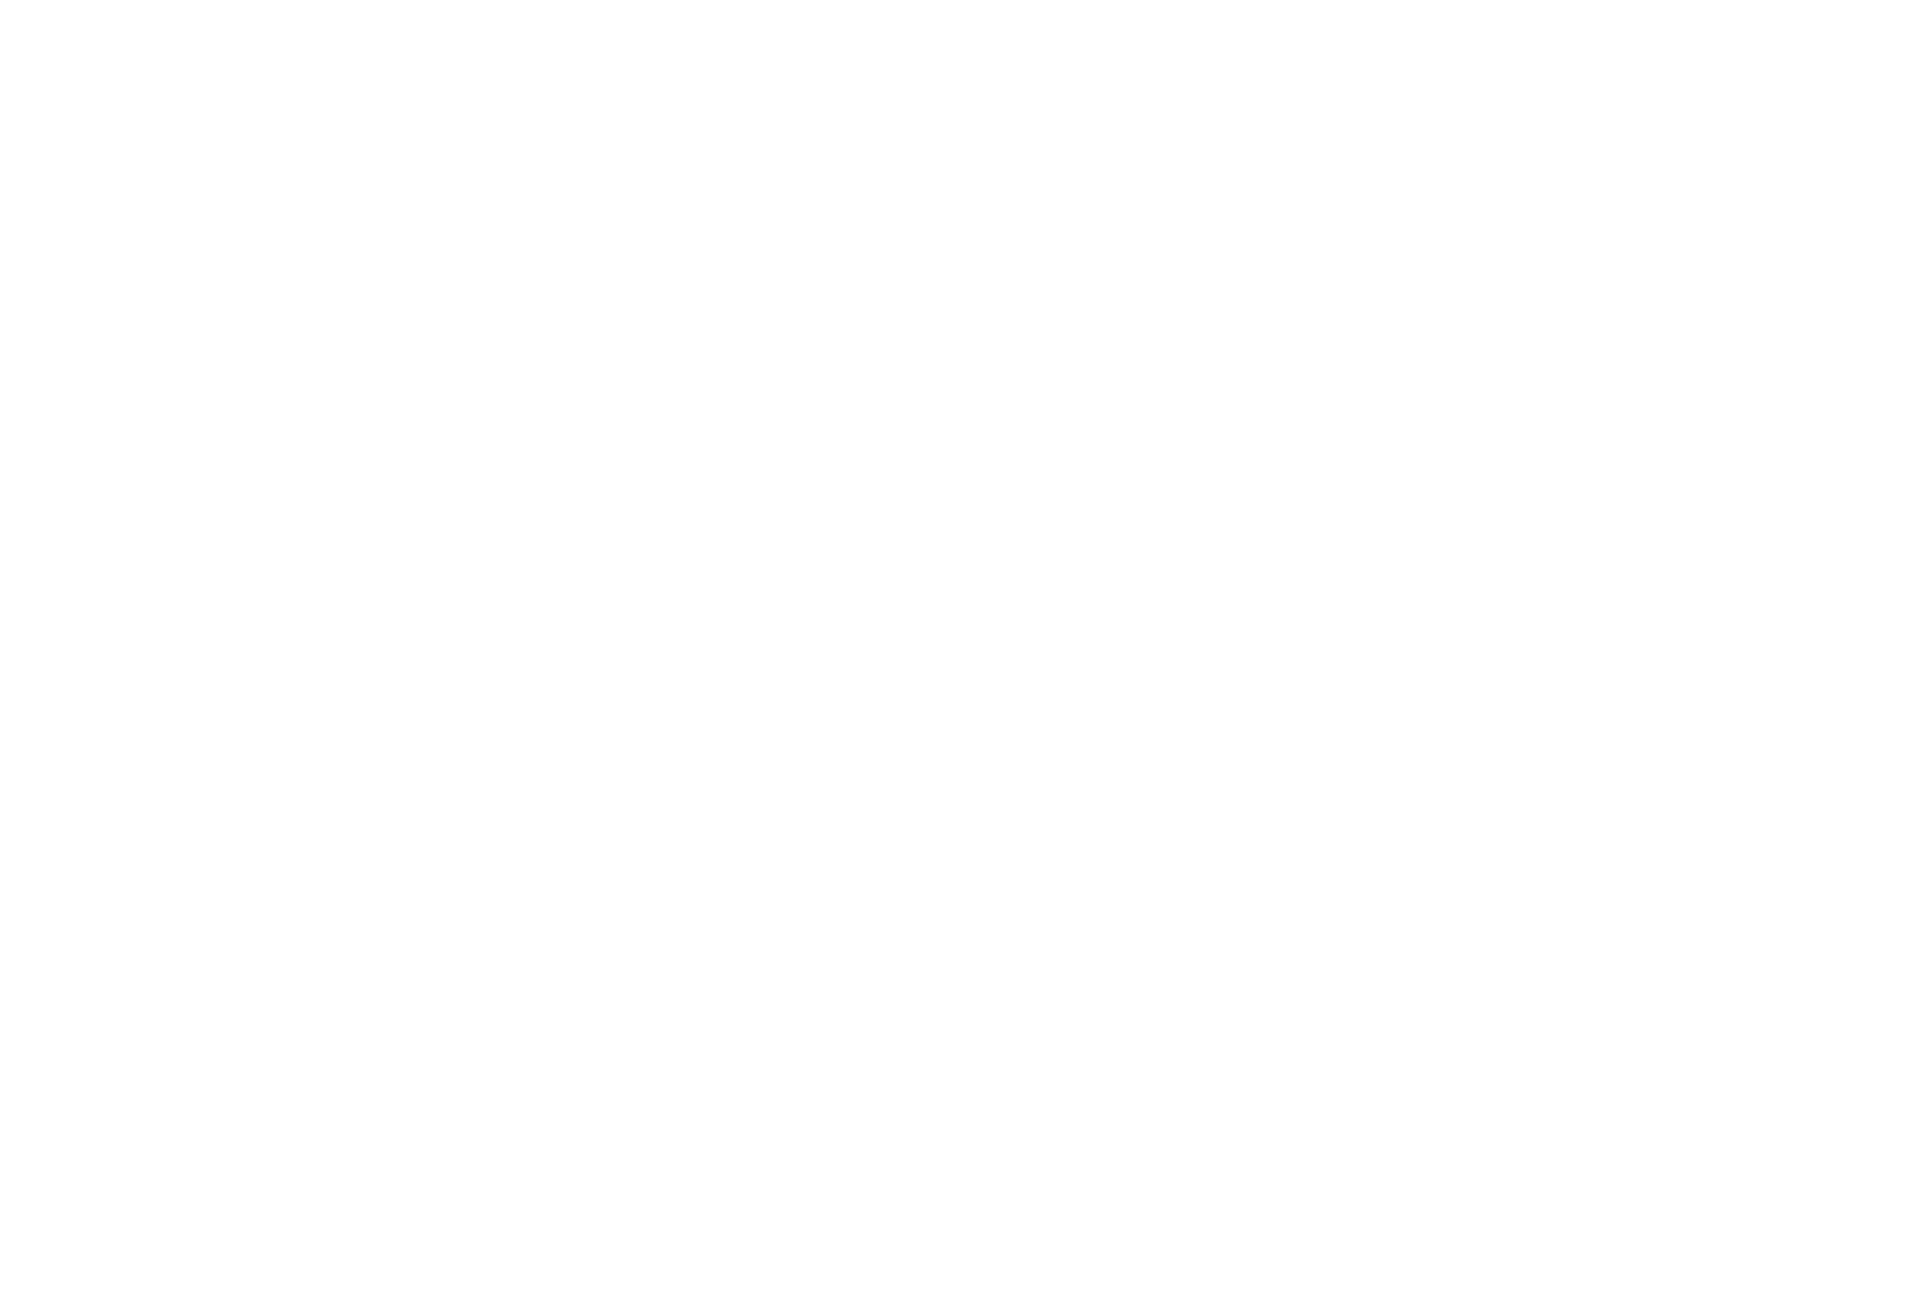 plate therapy logo